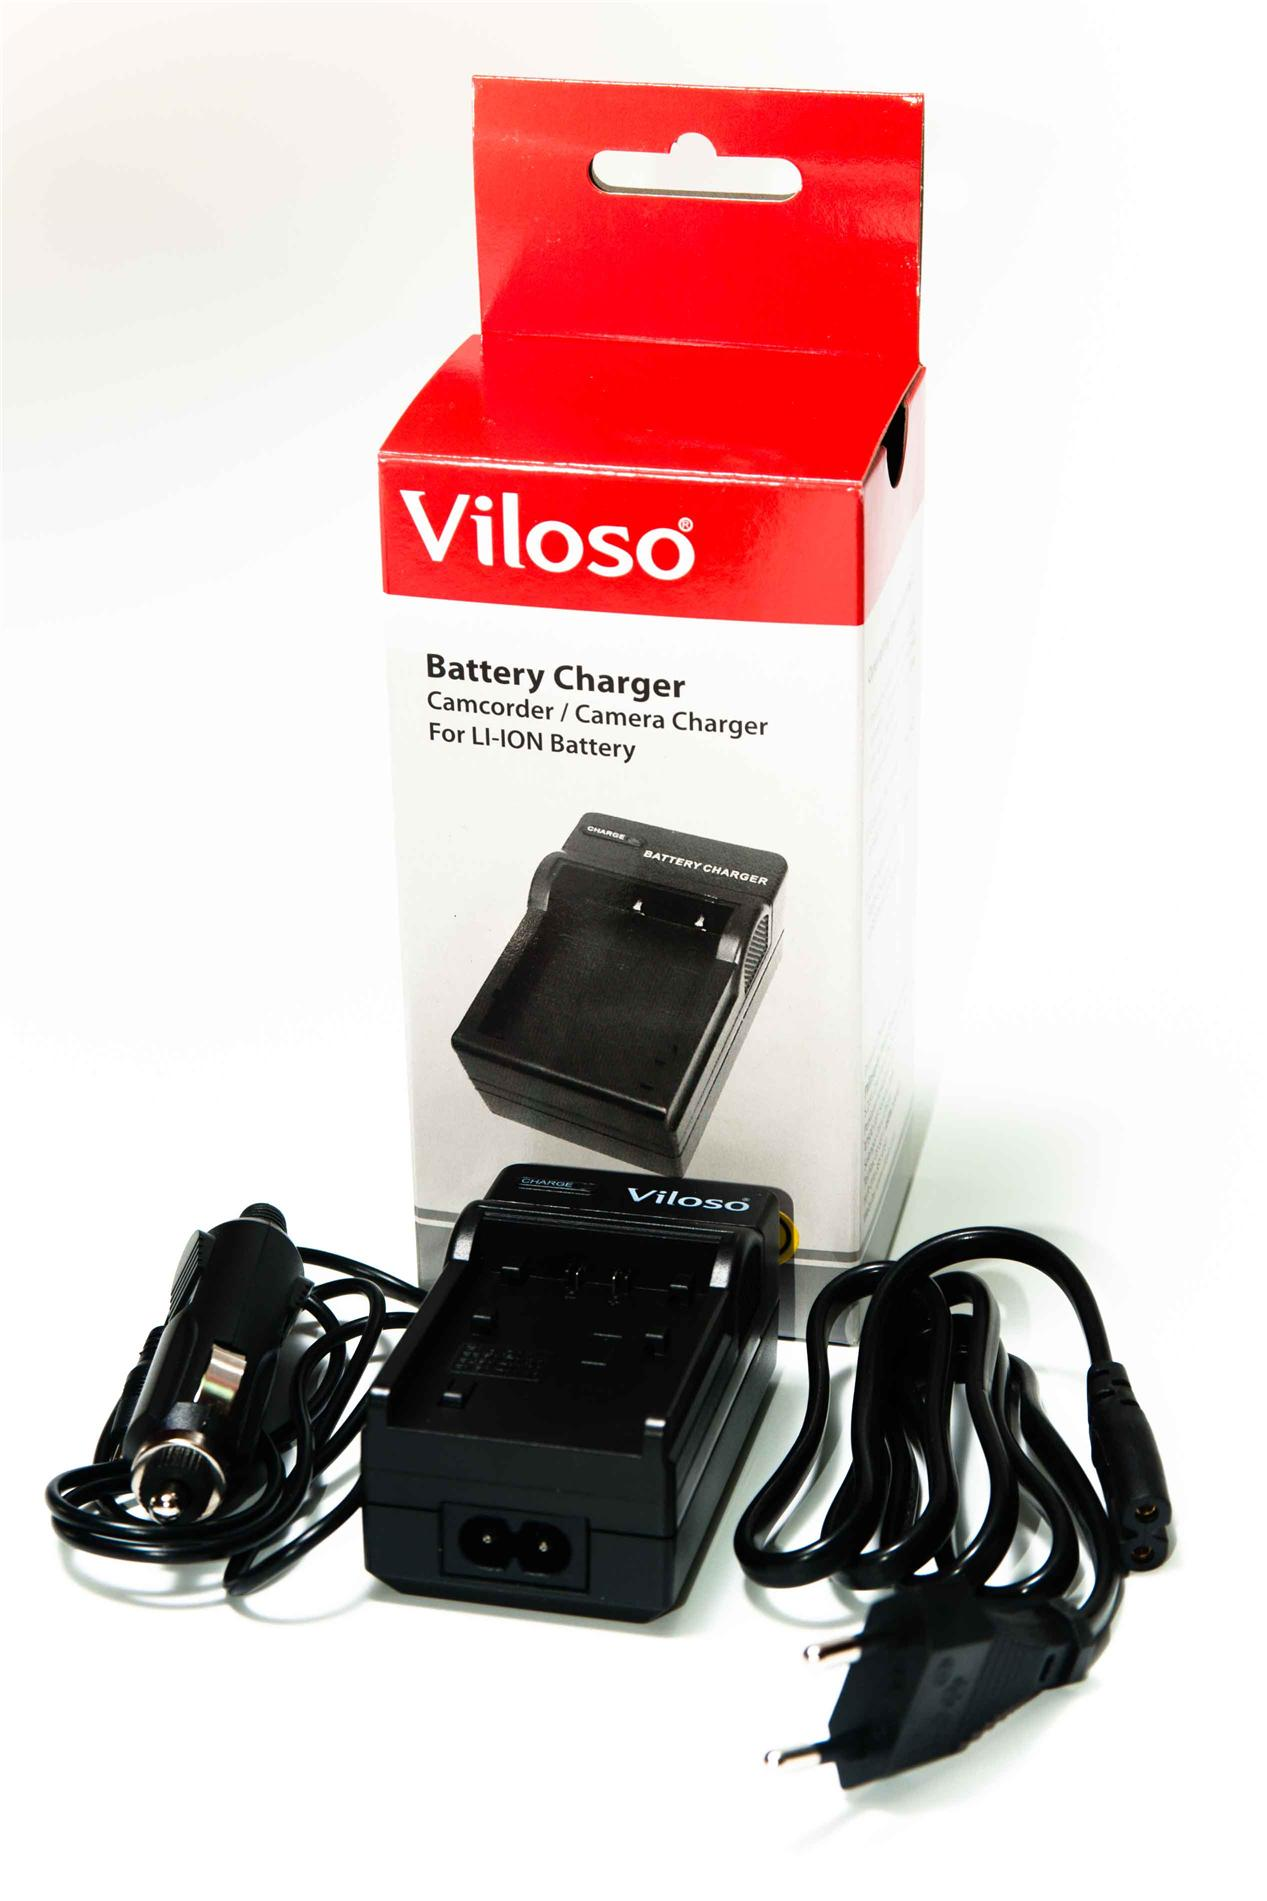 VILOSO camera charger with car adapter for SONY NP-FV100, 70 & 50